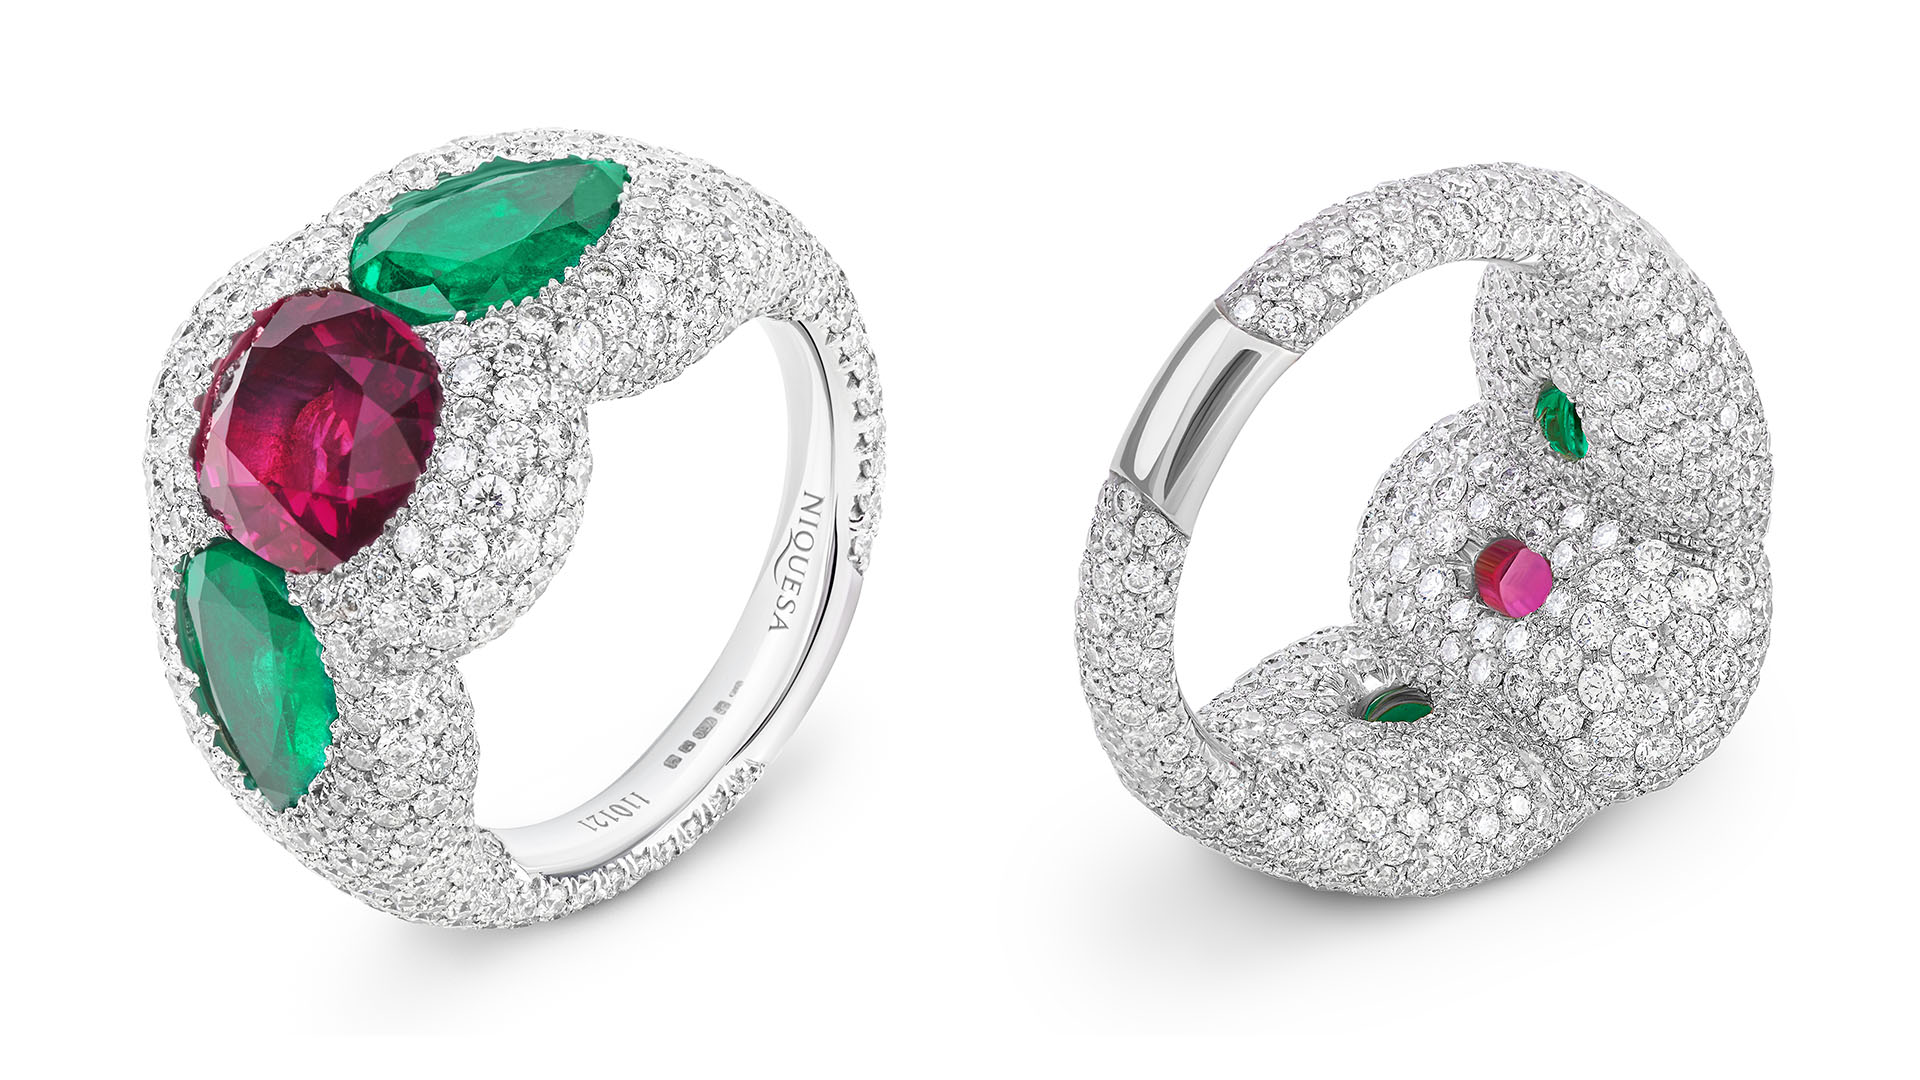 Fine jewellery photography services in the UK